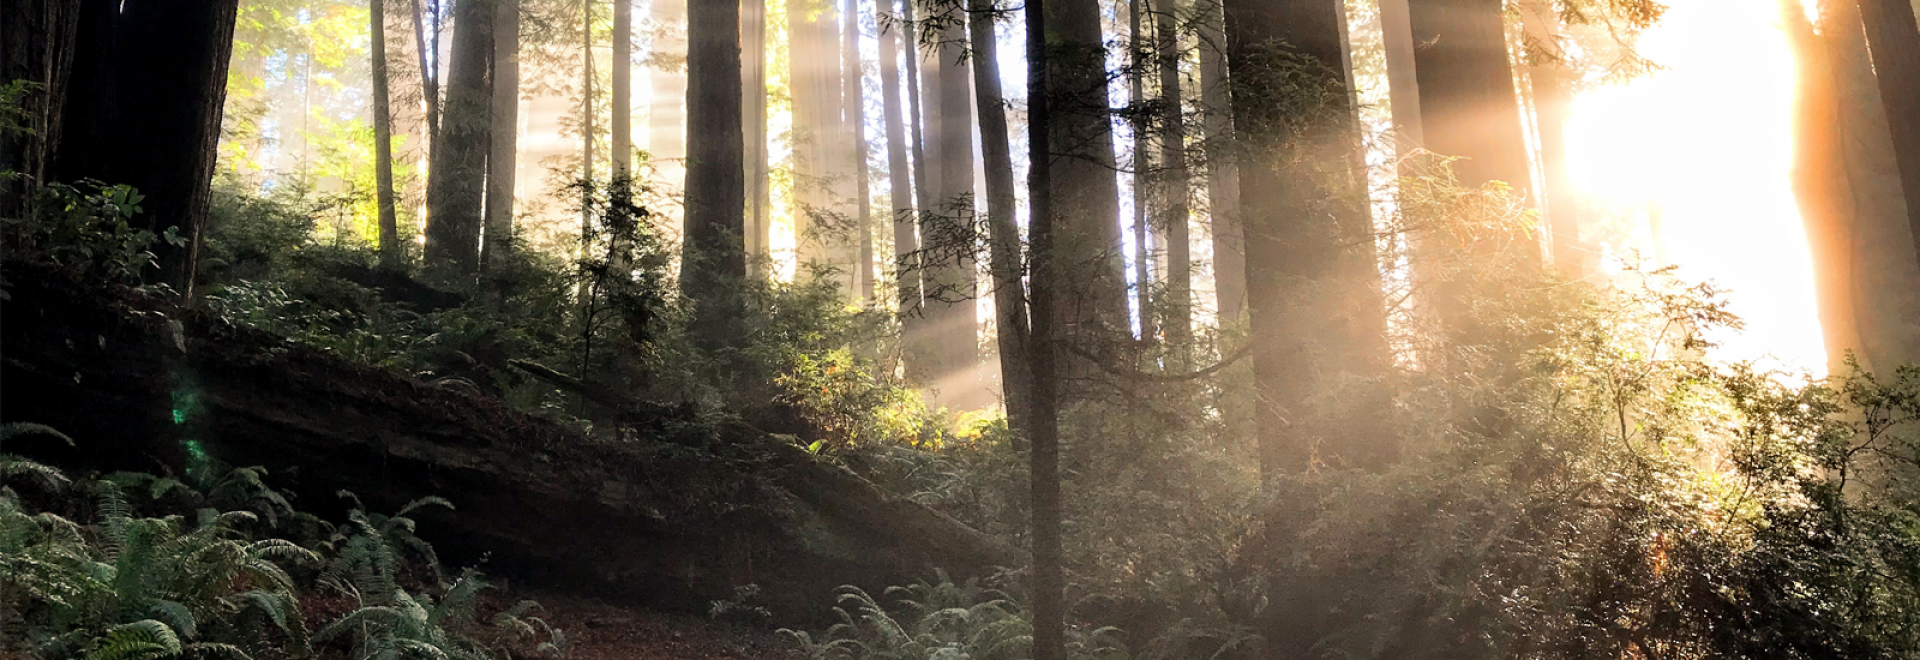 Sun through redwoods